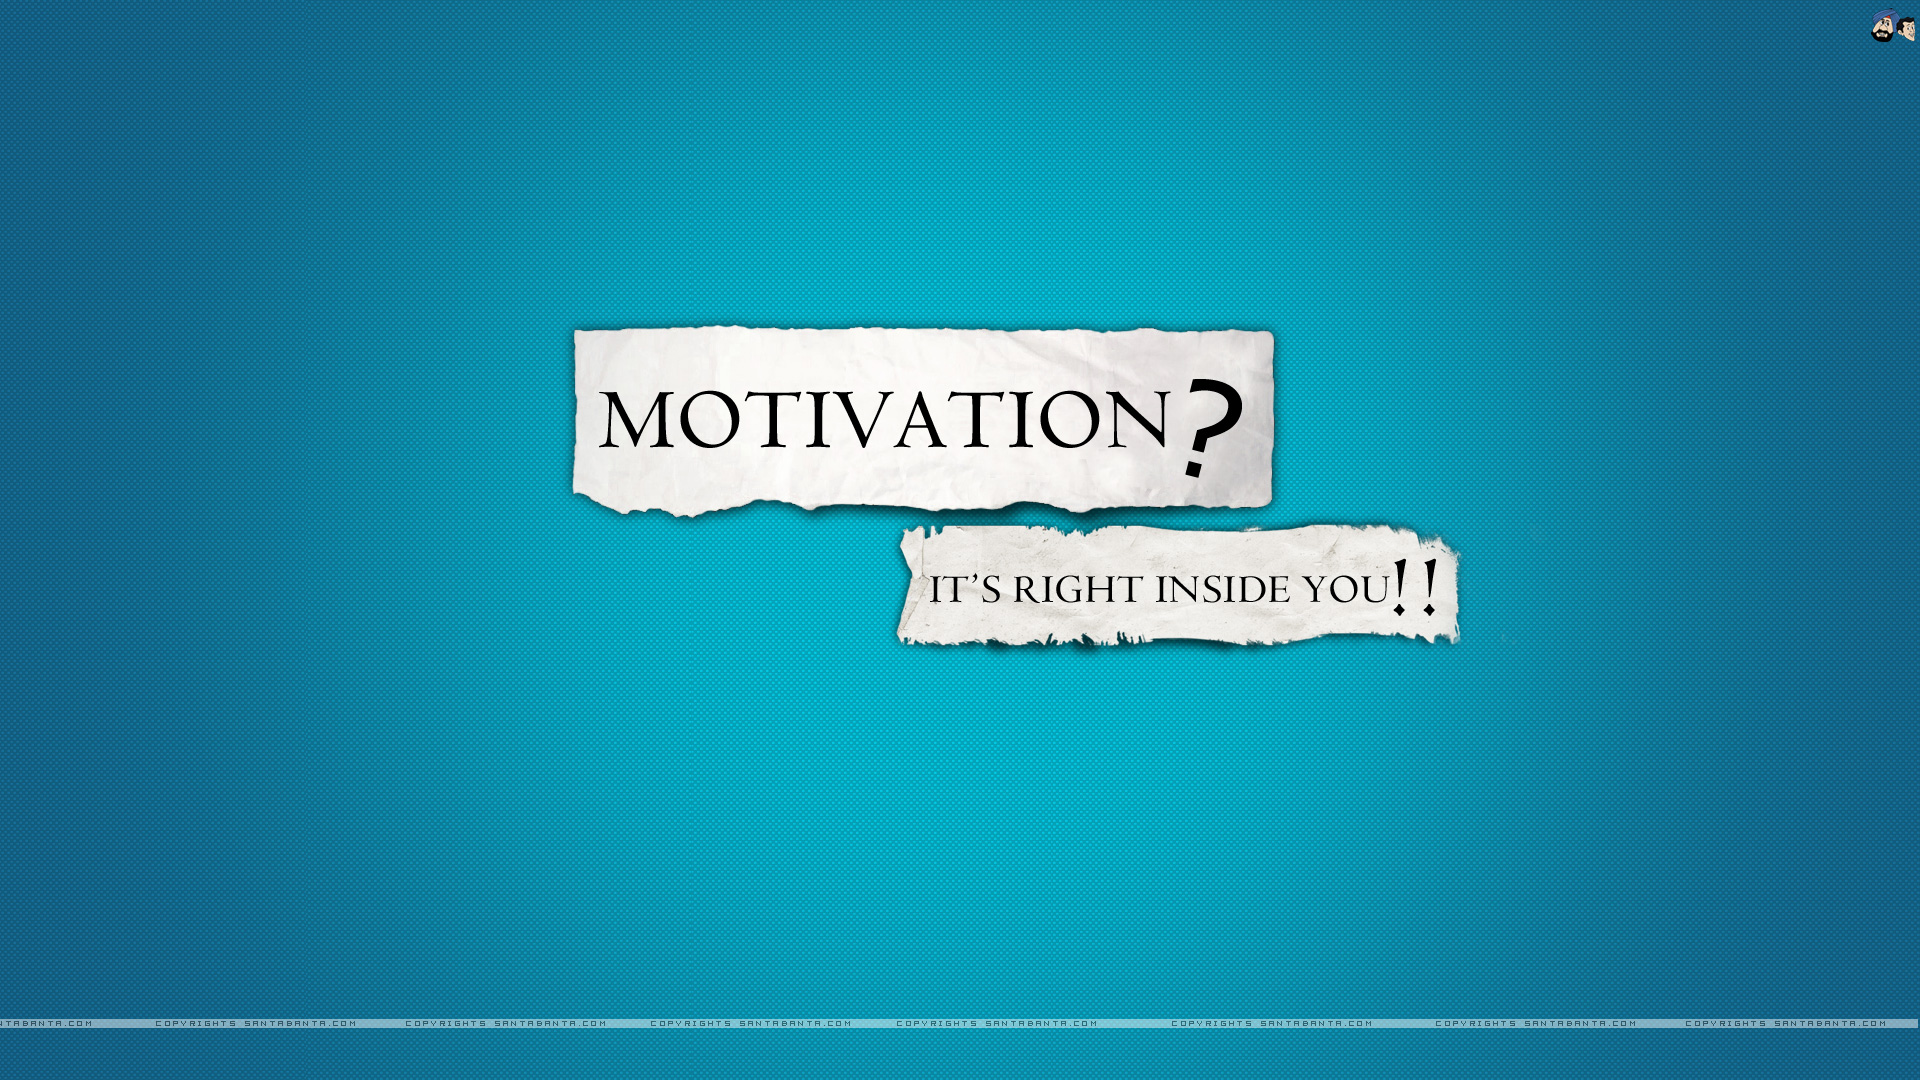 Motivation-is-inside-you1